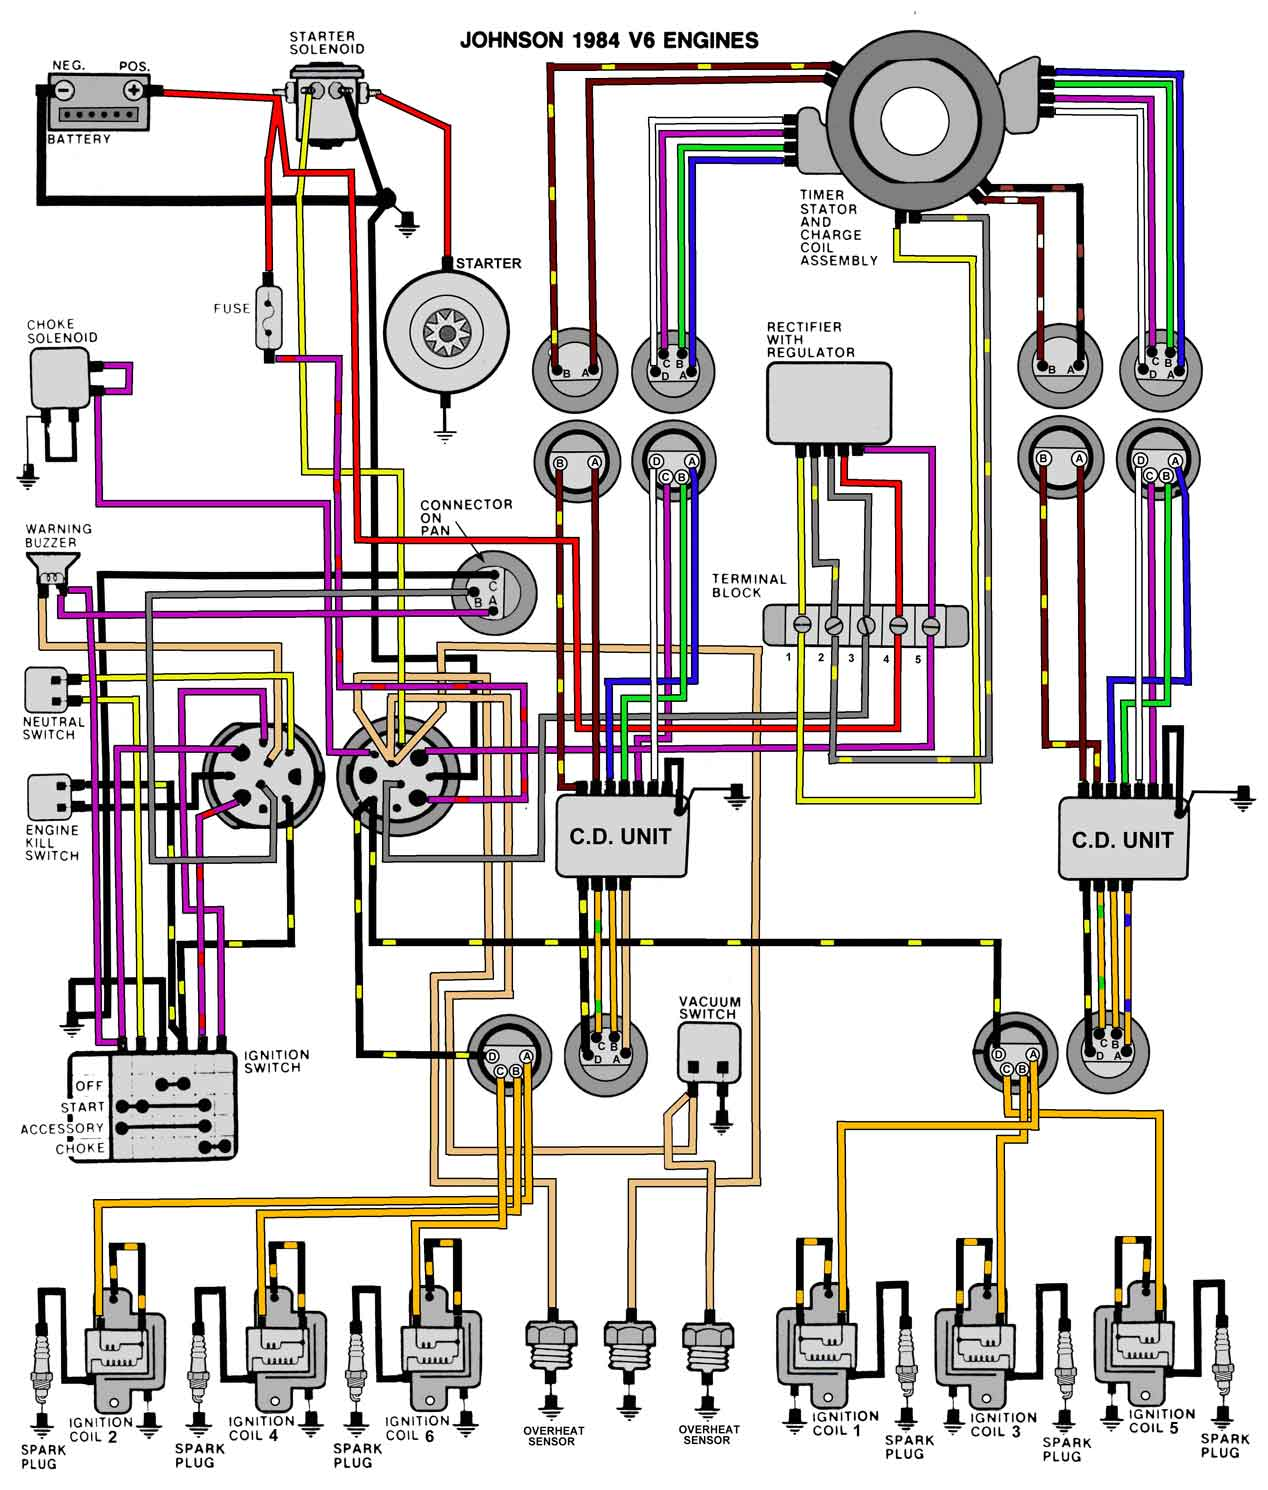 84_V6 johnson outboard wiring diagram 25 hp johnson wiring diagram yamaha outboard motor wiring harness at reclaimingppi.co